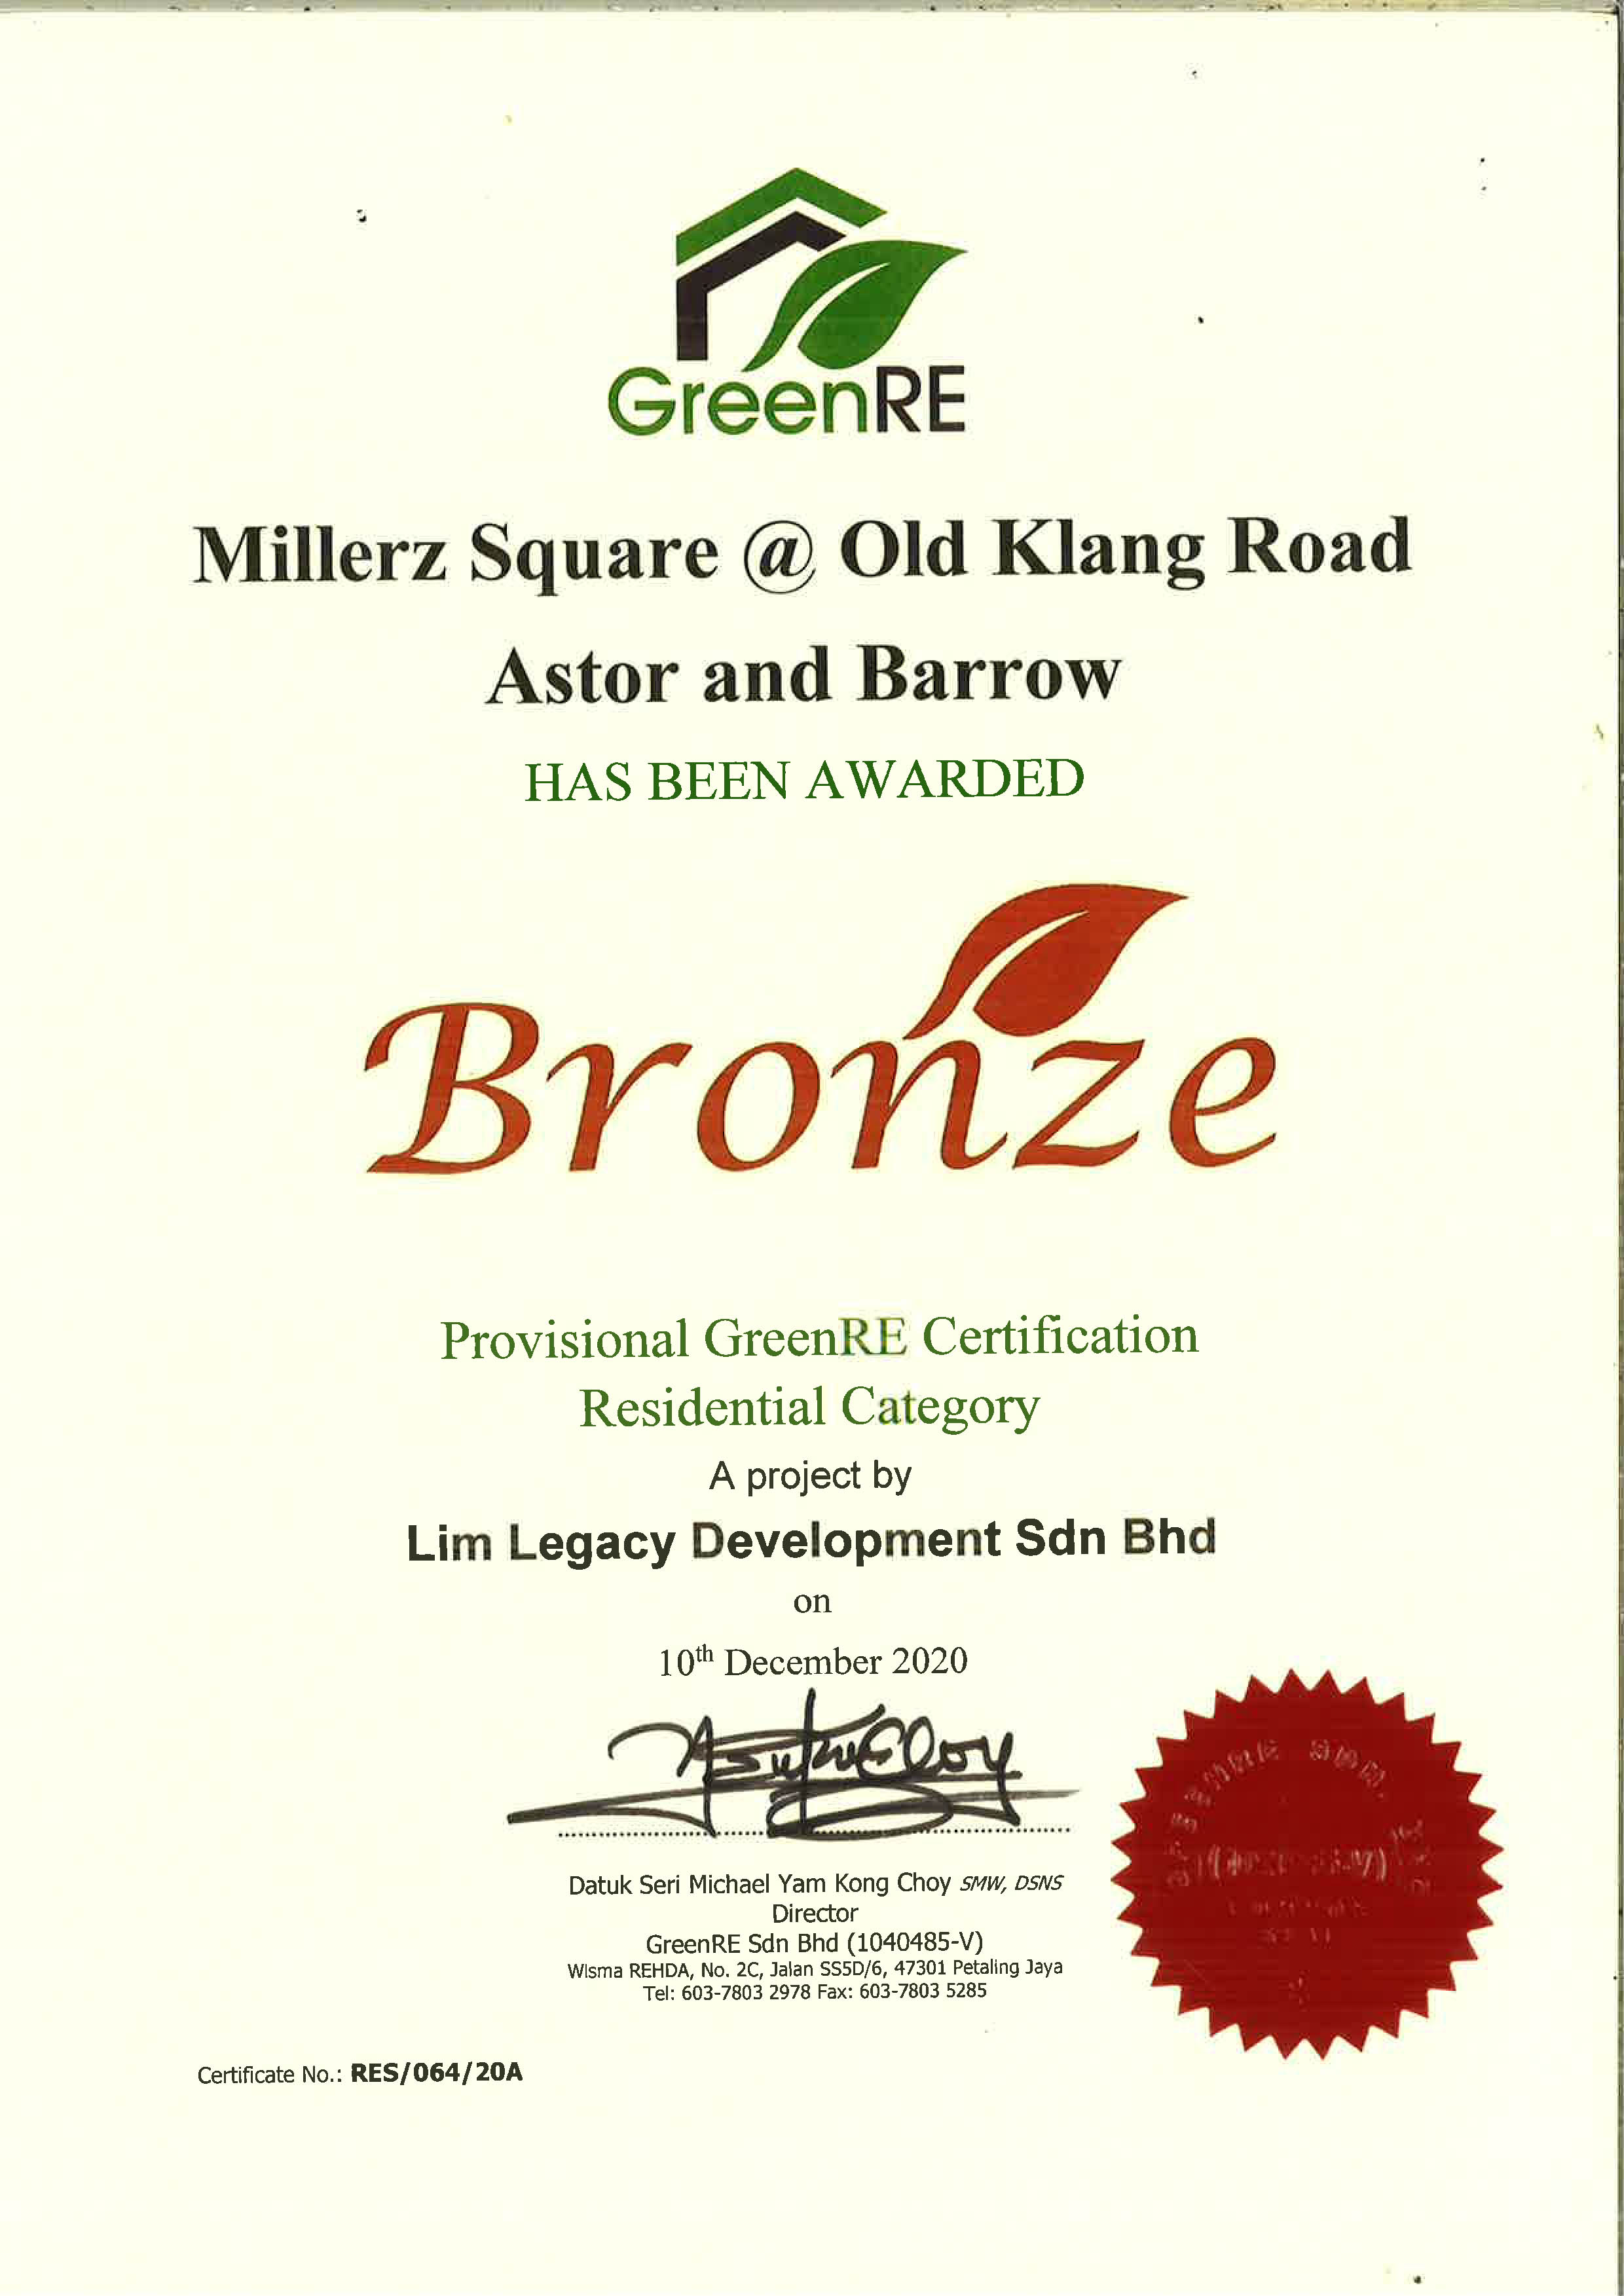 Millerz_BRONZE-PROVISIONAL-GREENRE-CERTIFICATION